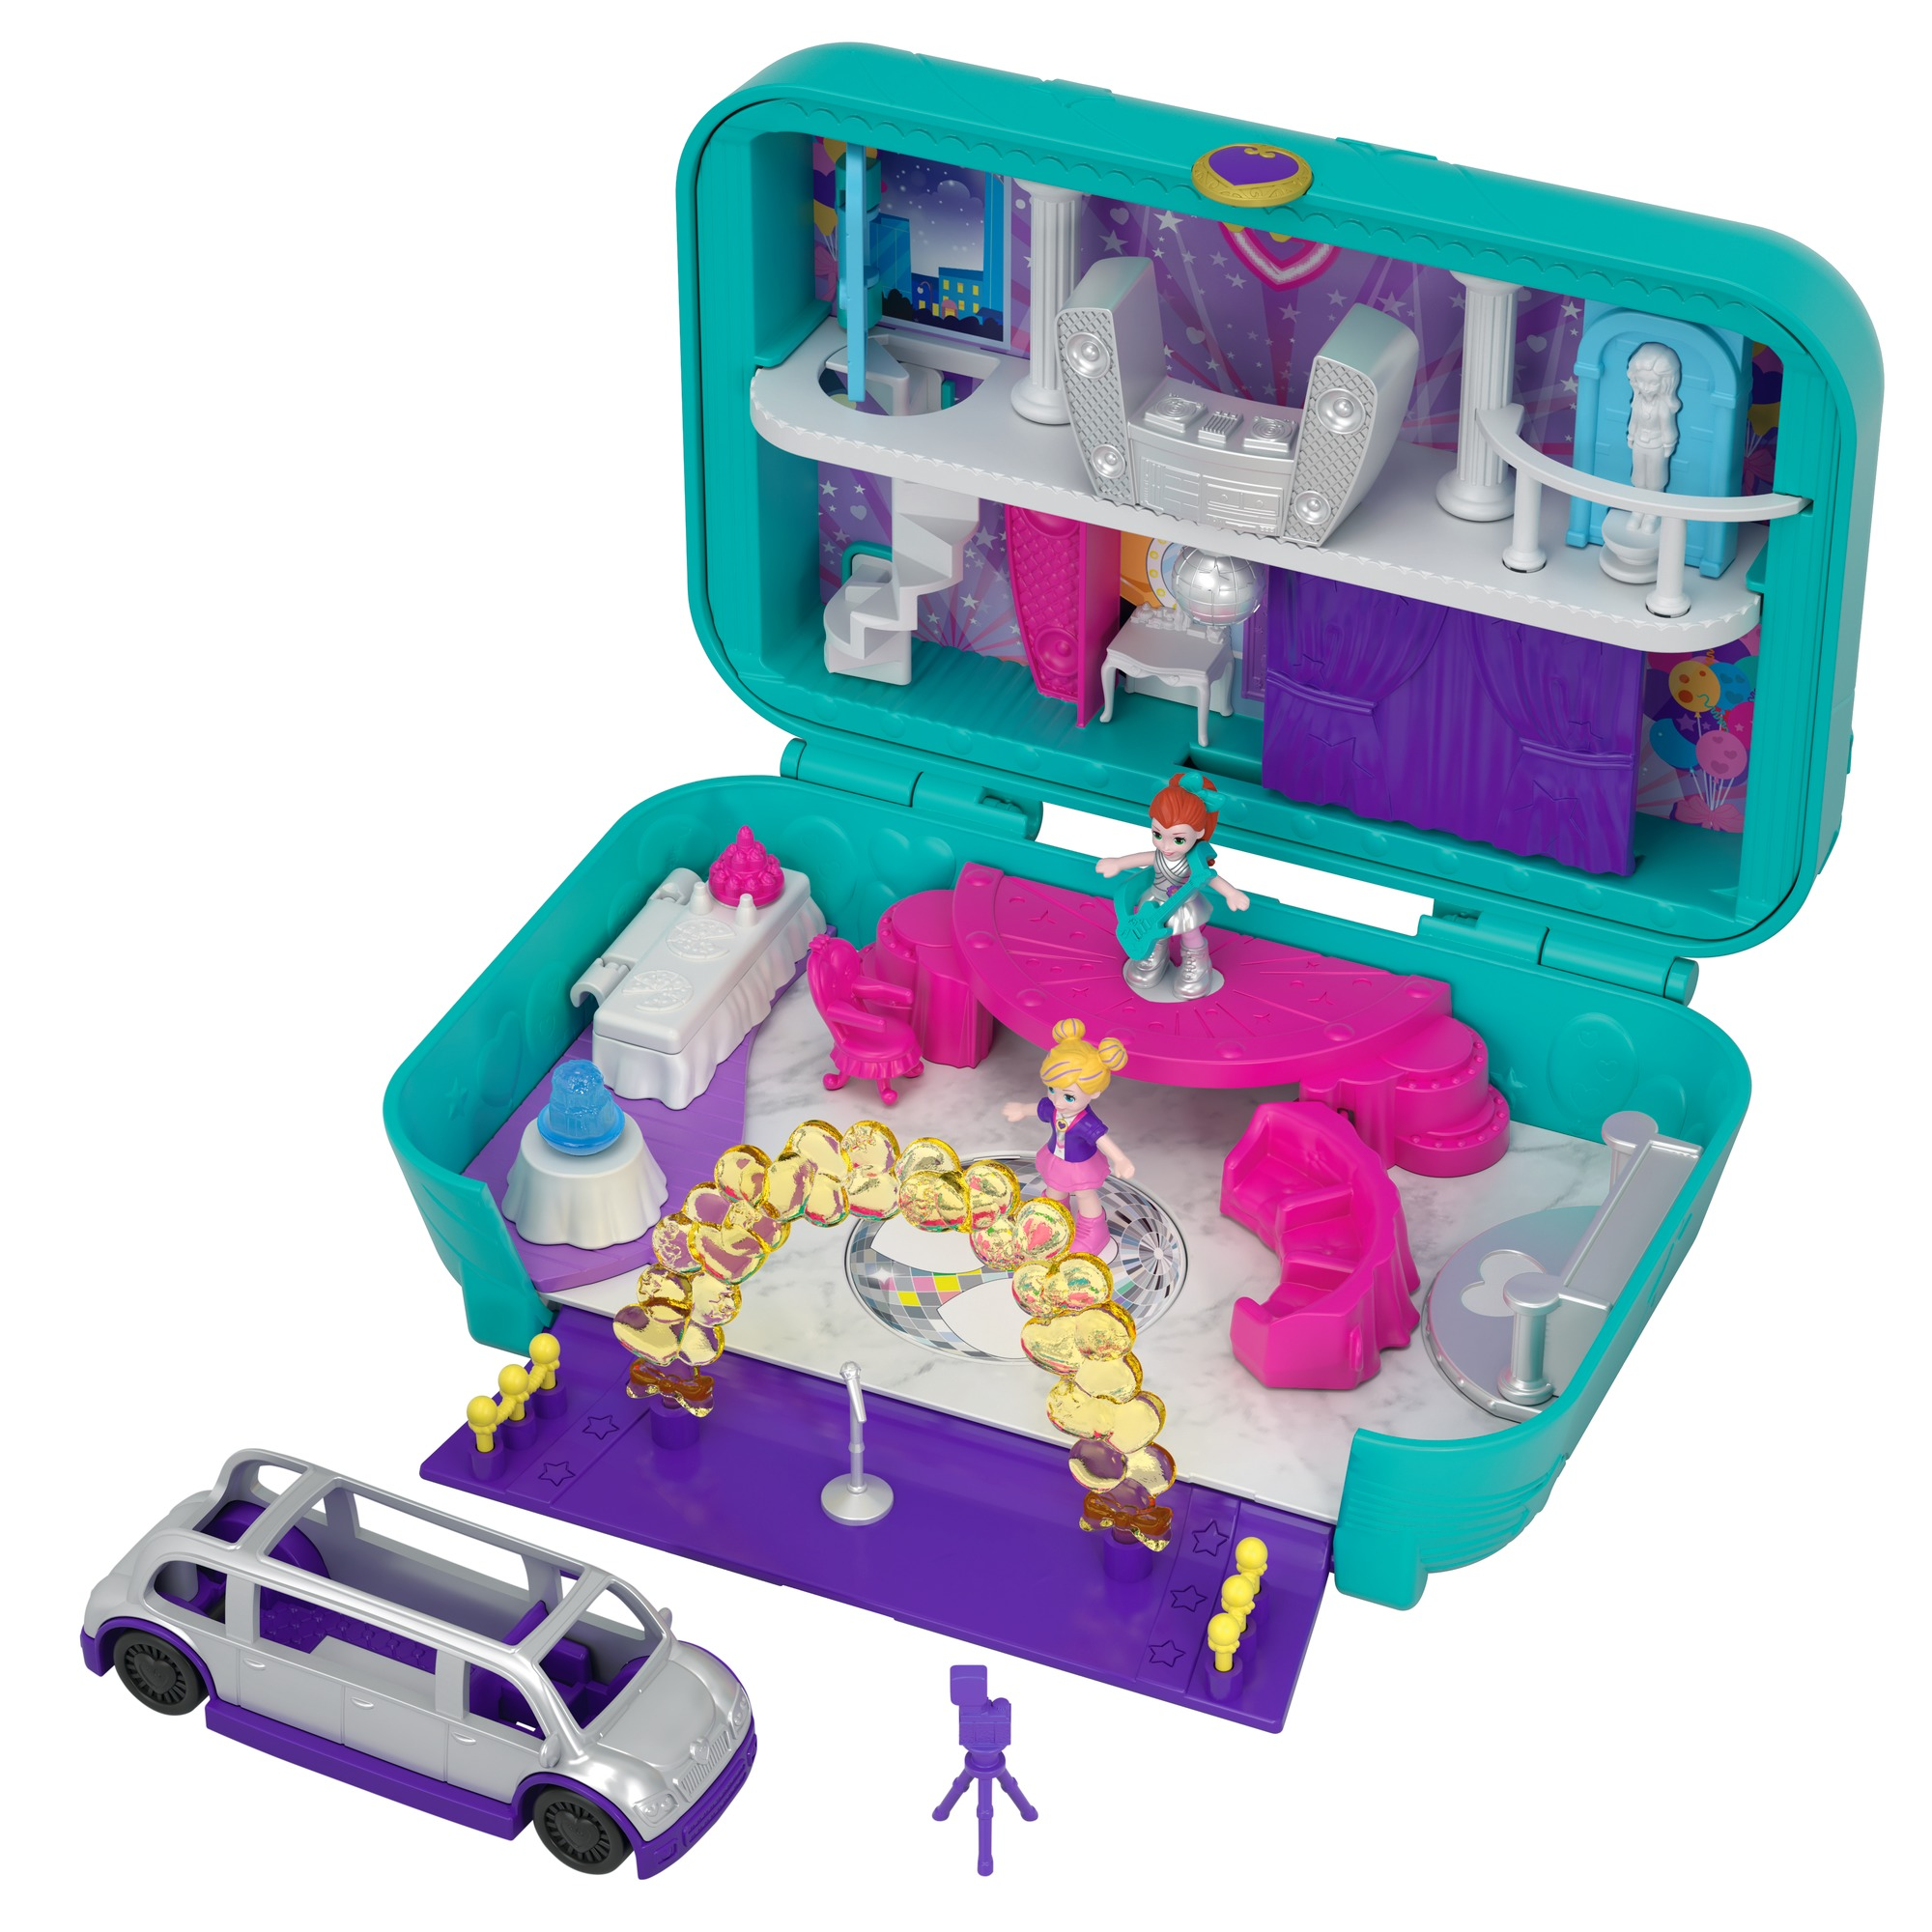 Polly Pocket Hidden Places Dance Par-taay! Case with Party Dolls and Accessories